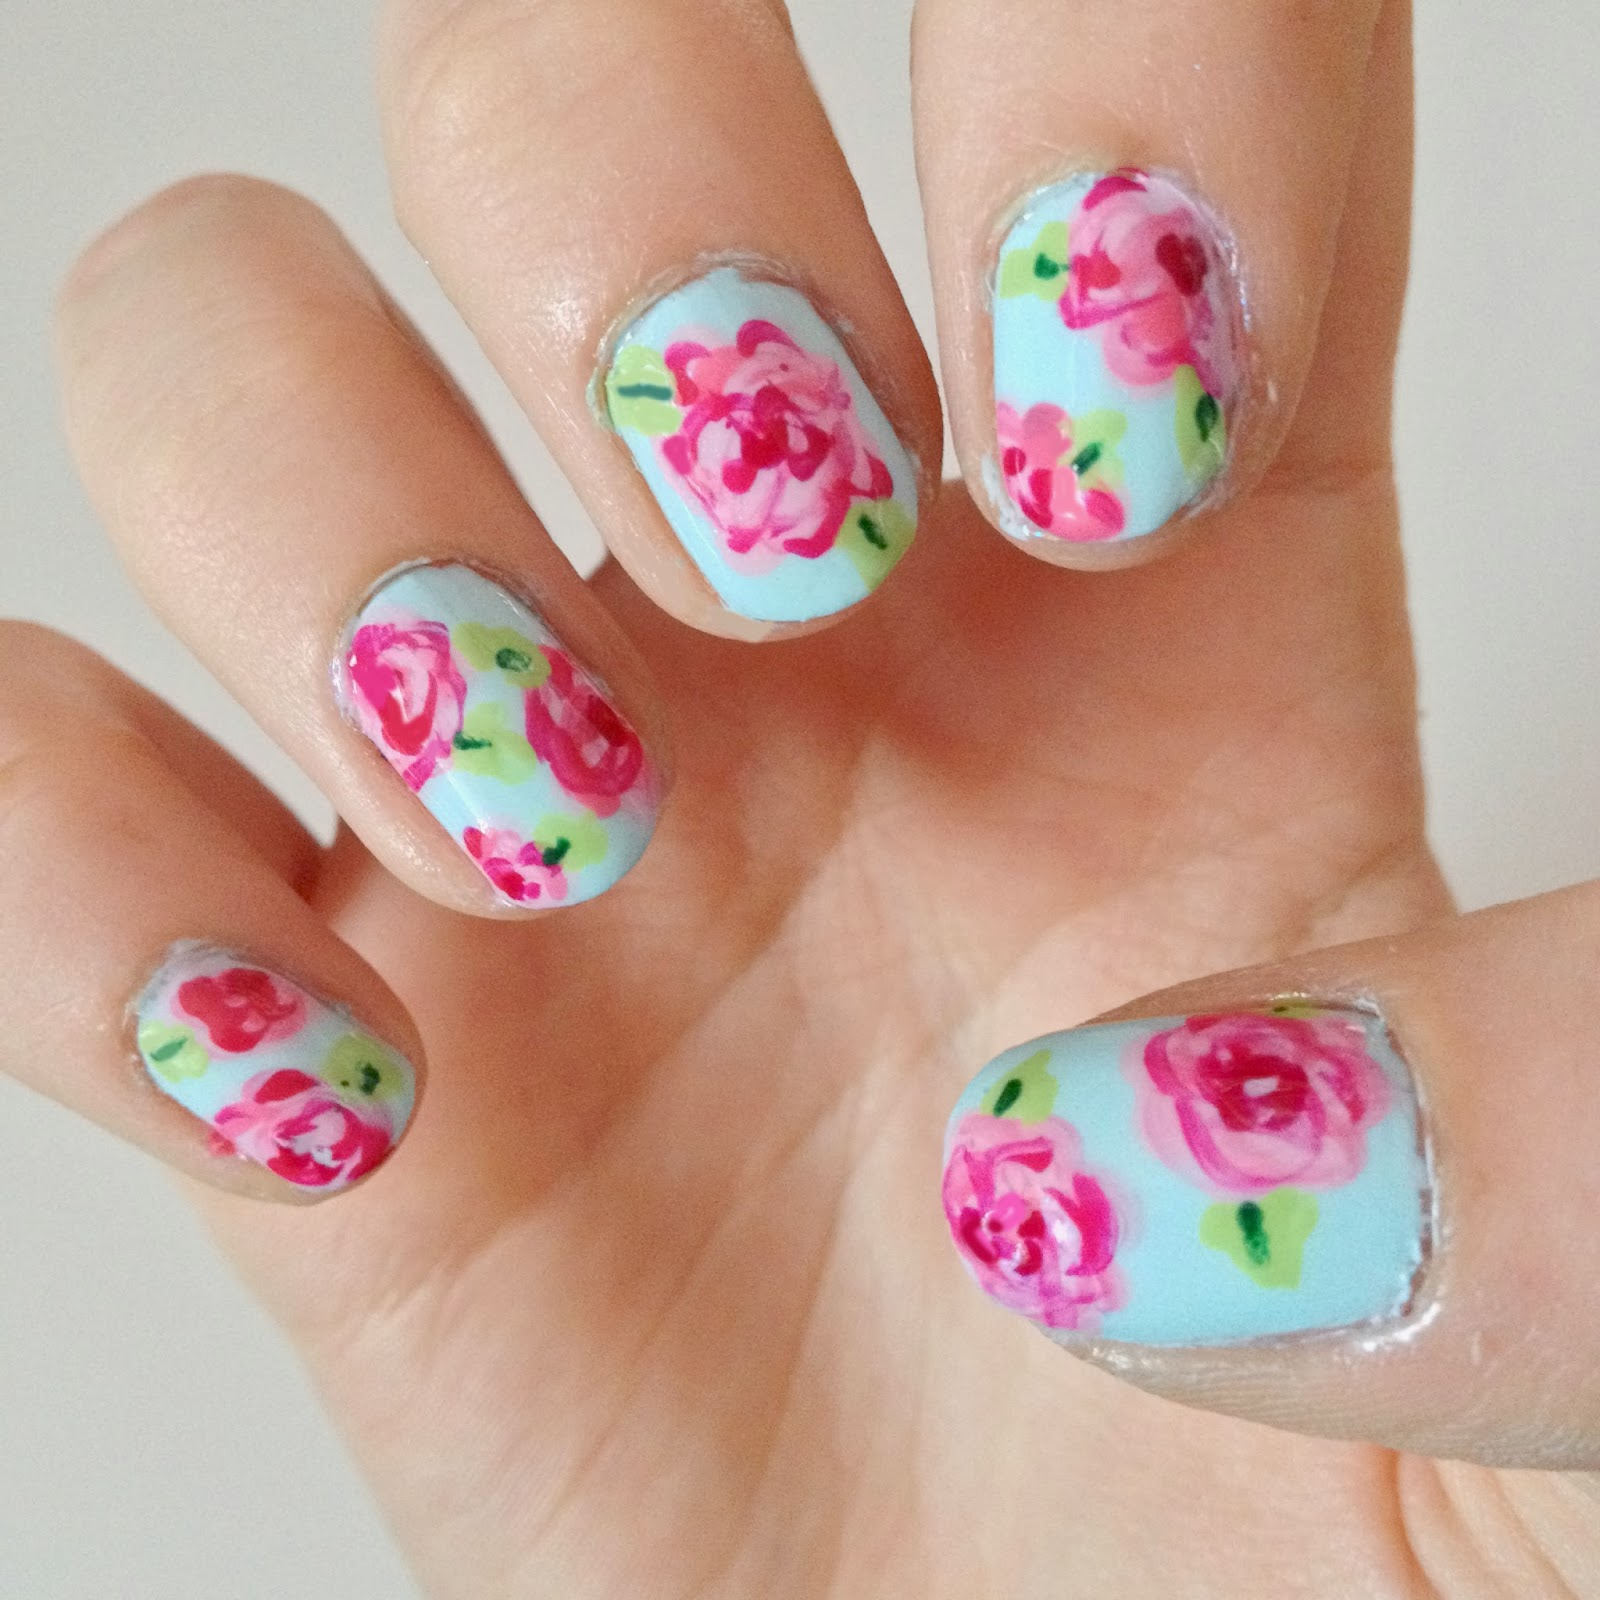 ... beauty, fashion and nail art blog: Cath Kidston inspired rose nail art